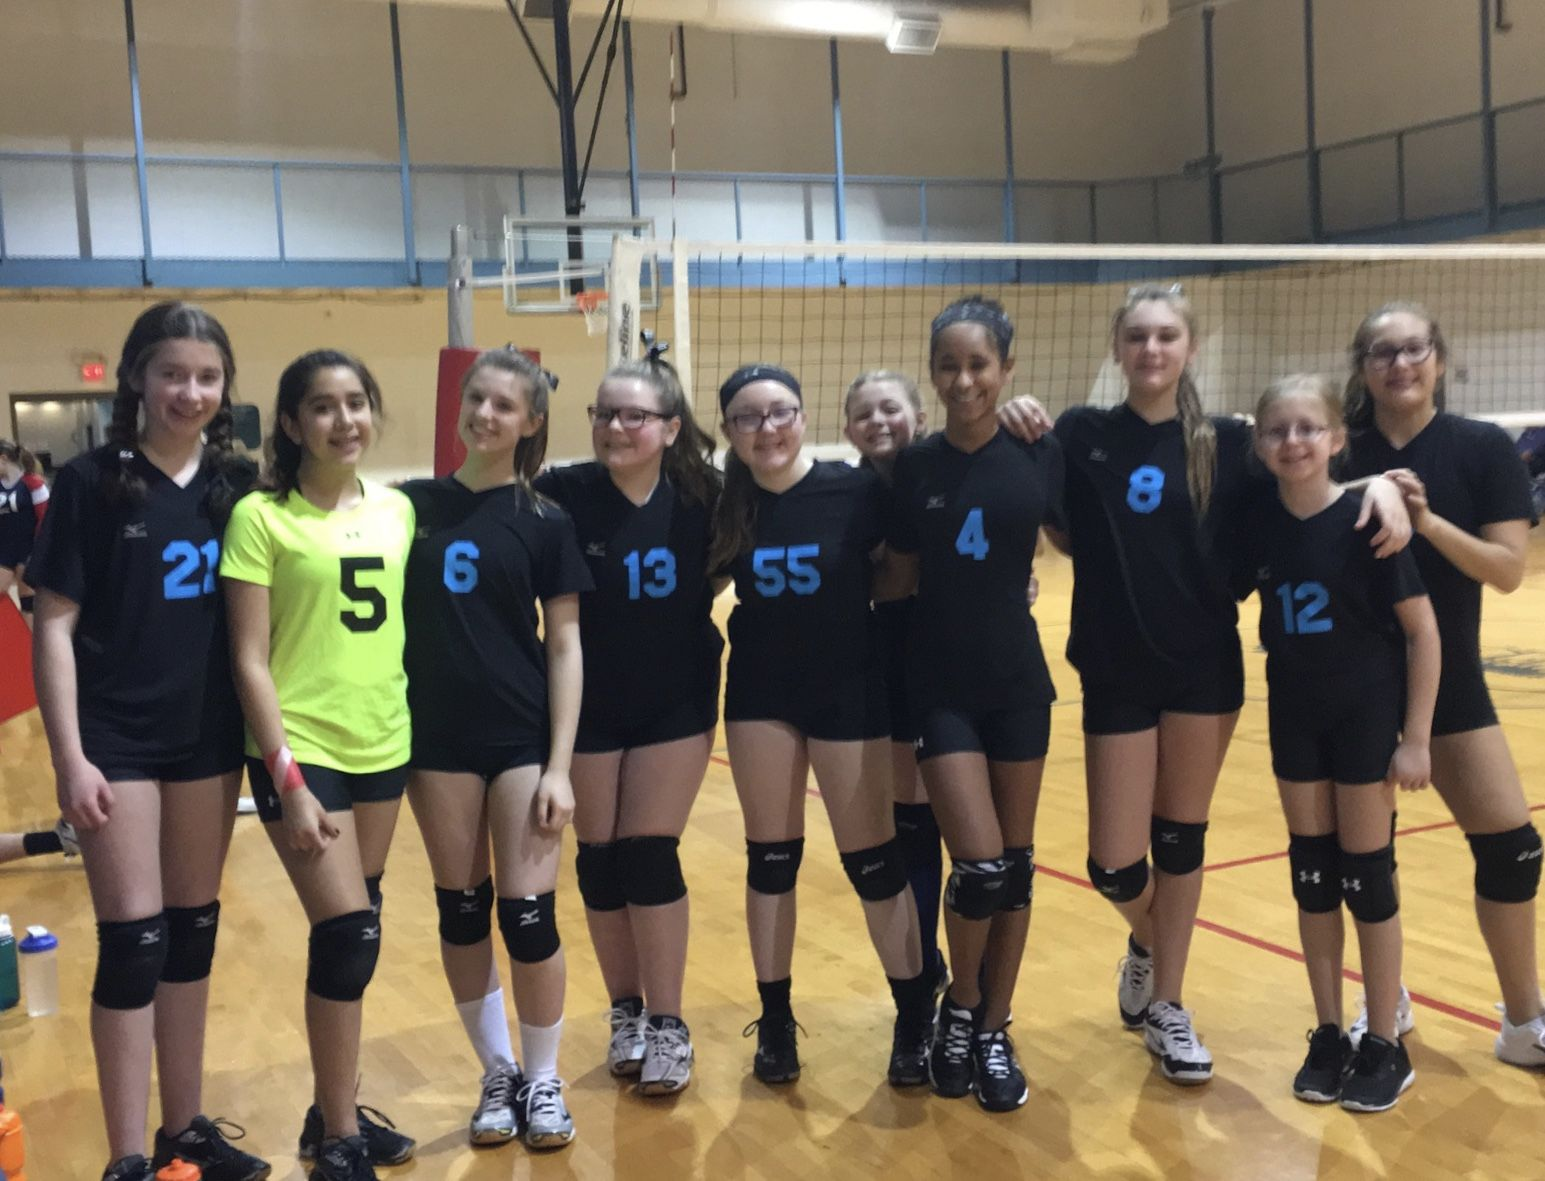 K Elites Jersey Styles 2018 13u Volleyball Clubs Elite Volleyball